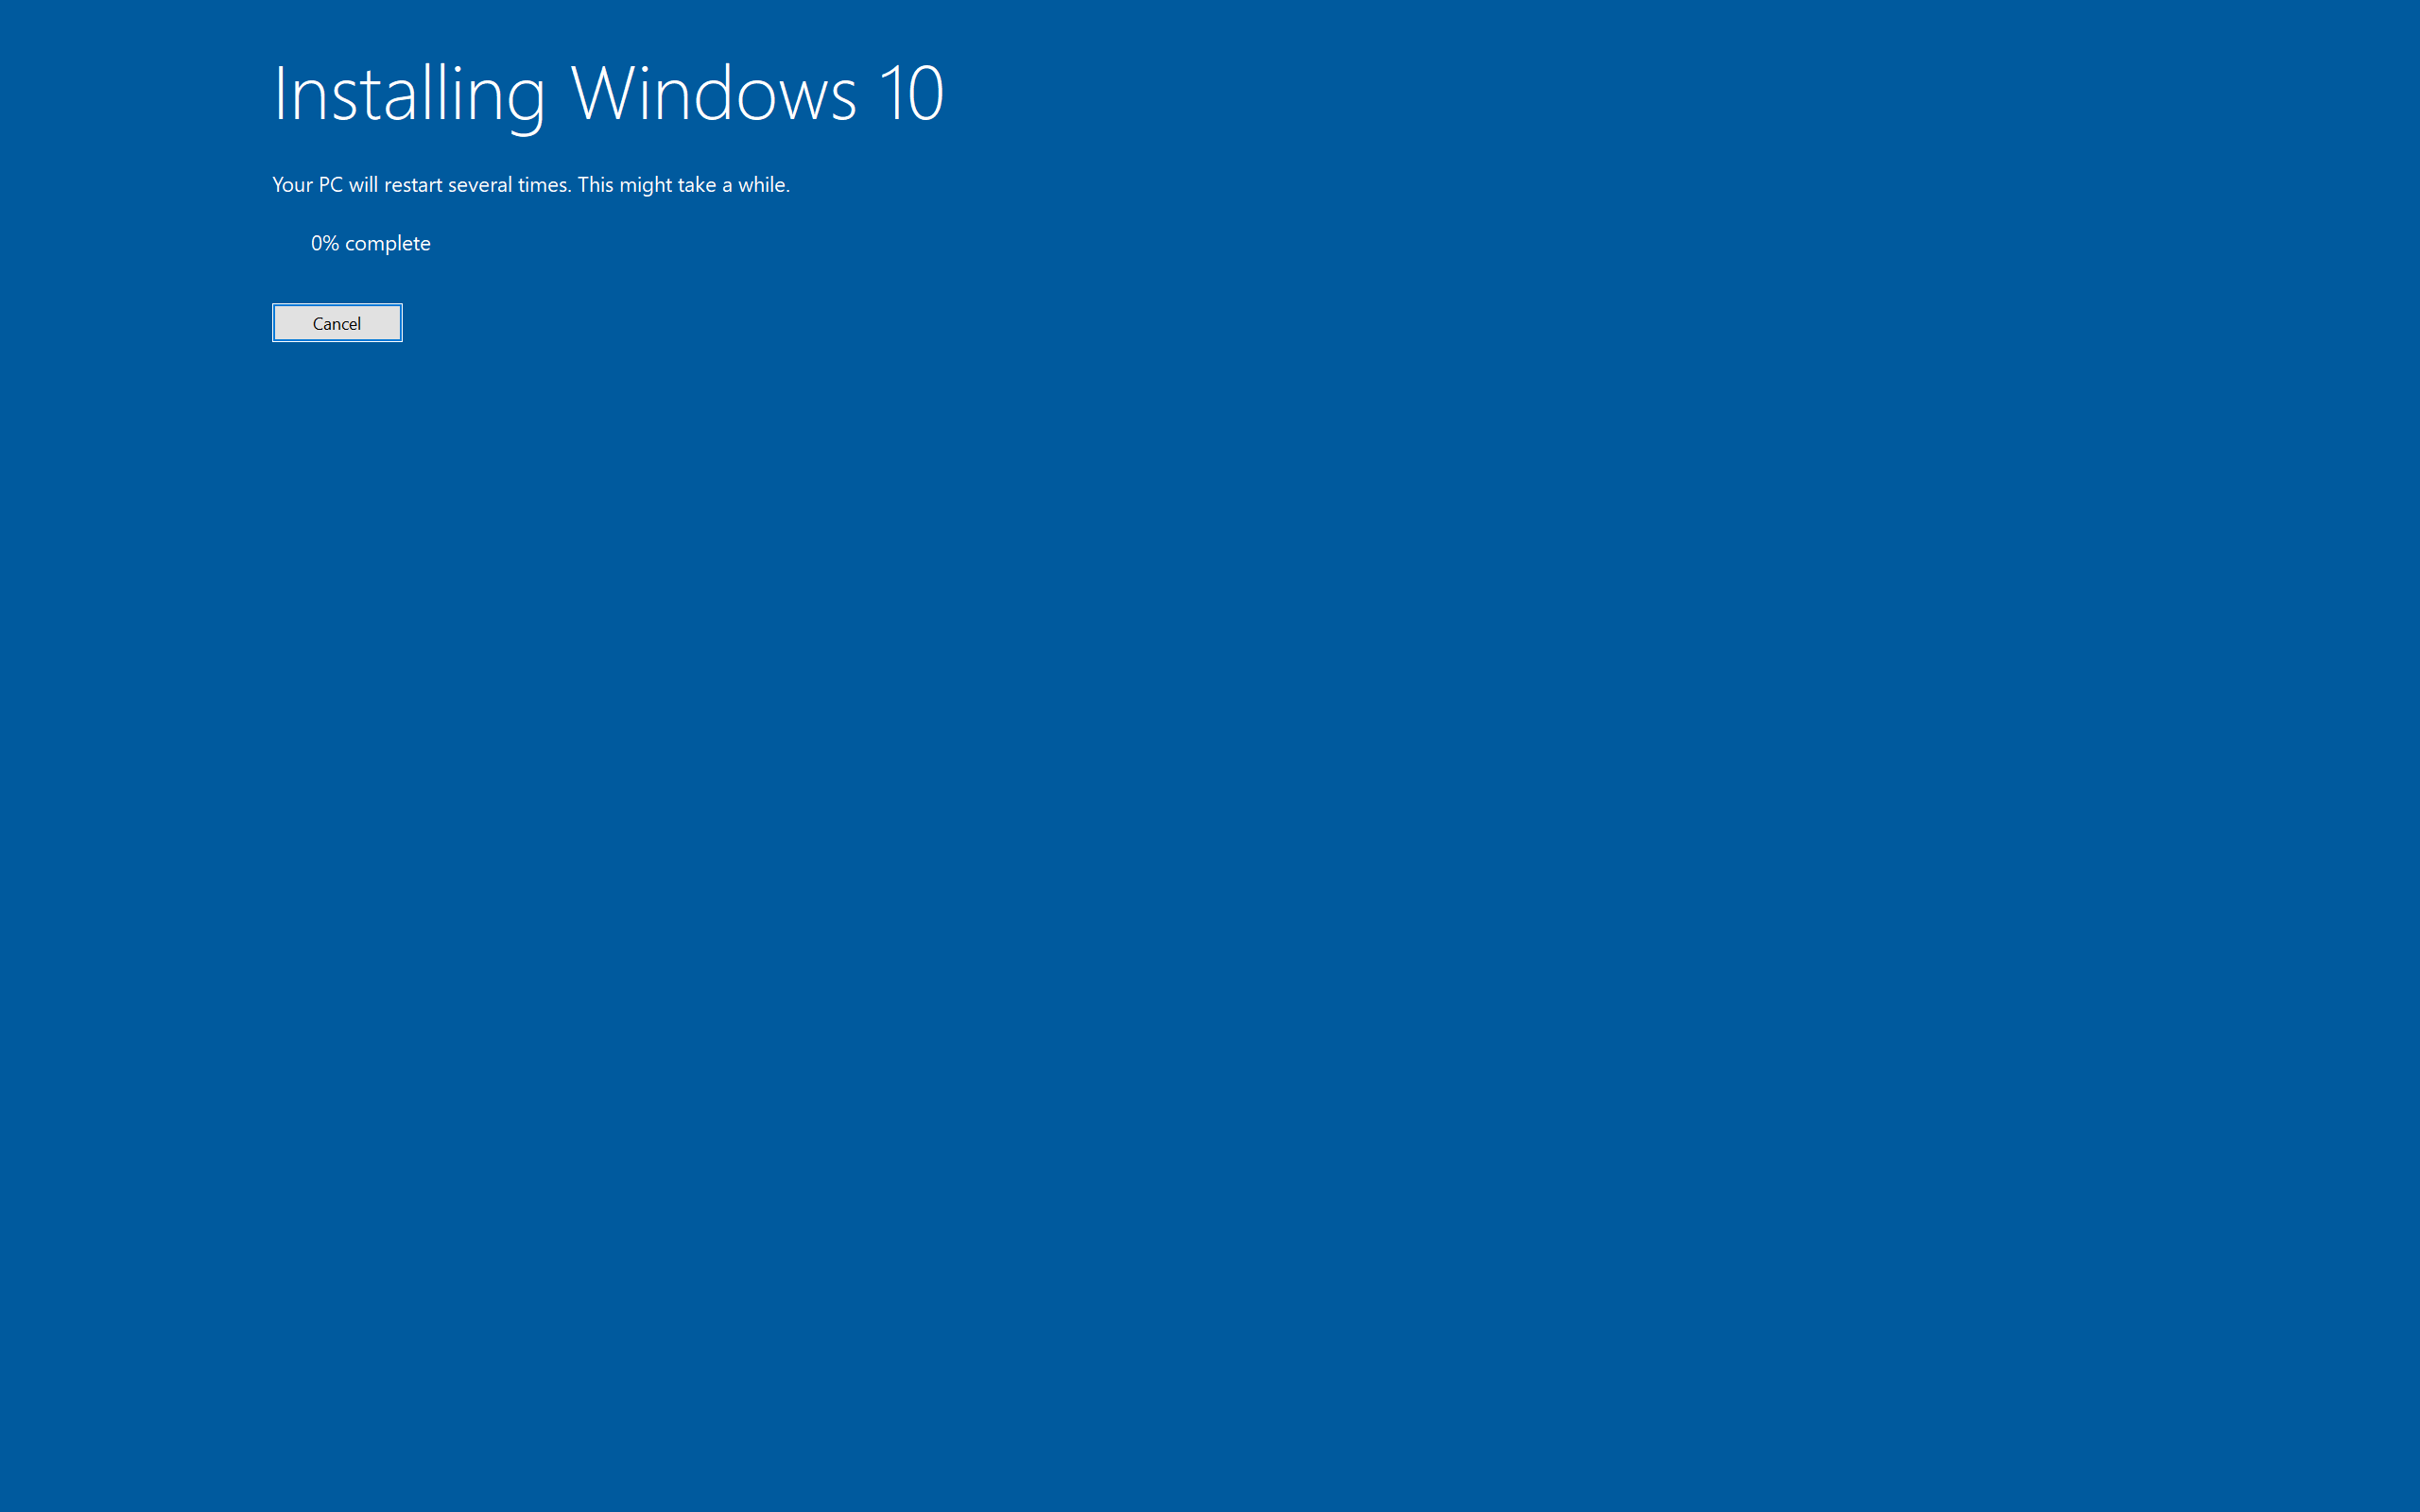 How to Upgrade to Windows 10 version 2004 using ISO